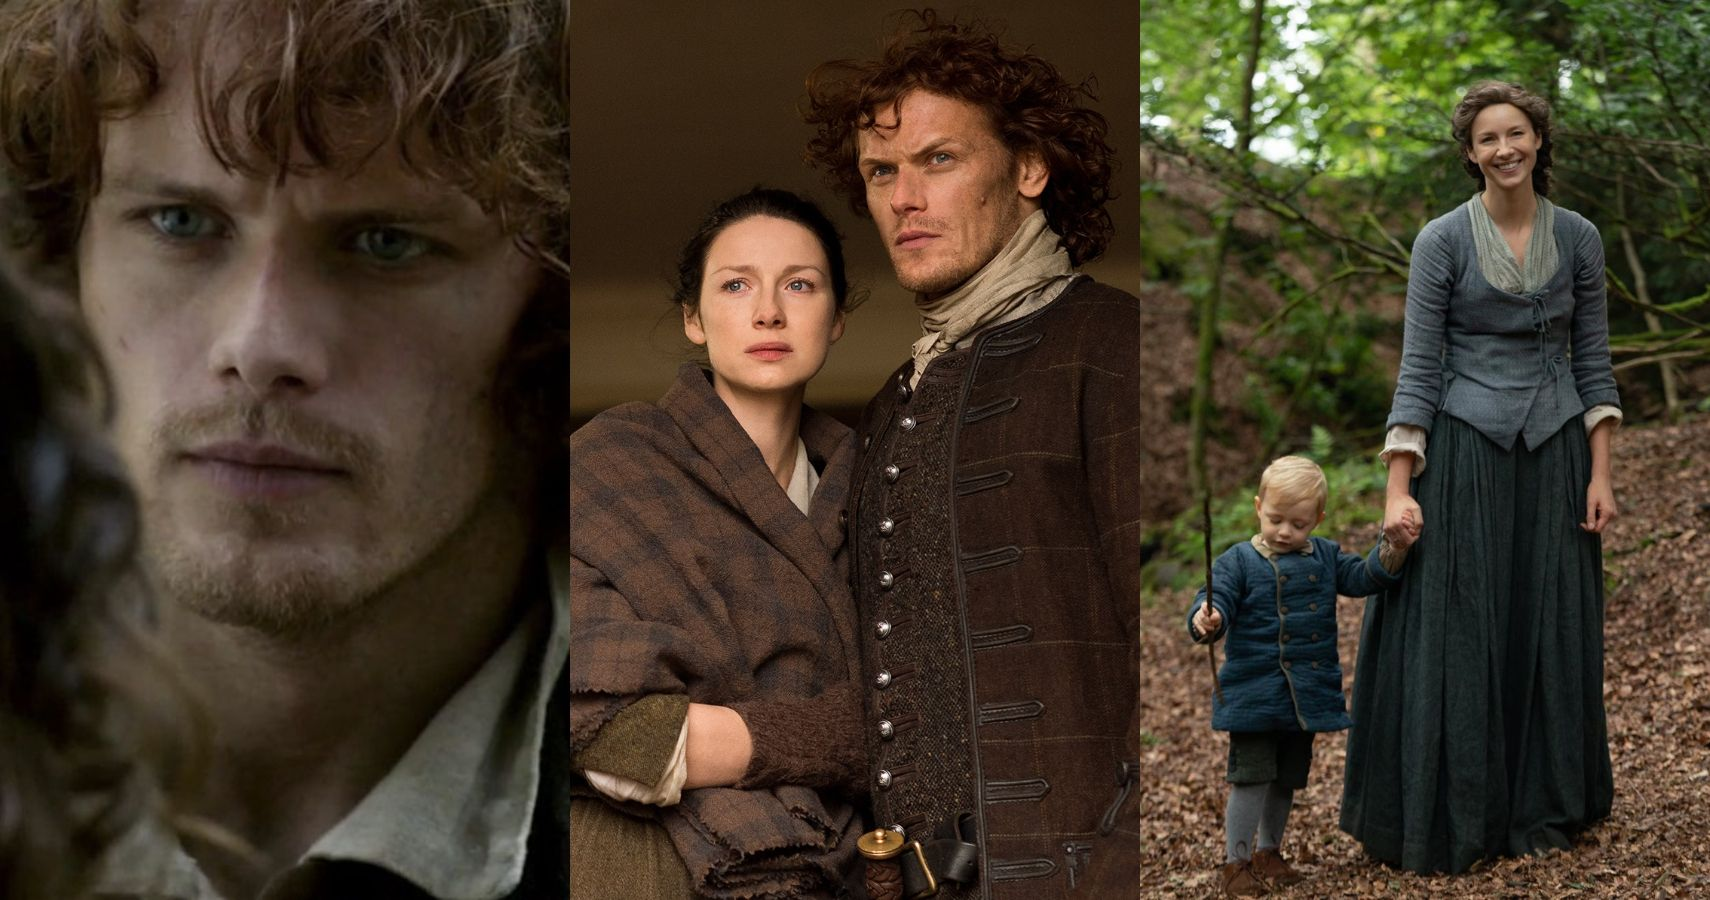 10 Best Outlander Episodes, According To Rotten Tomatoes